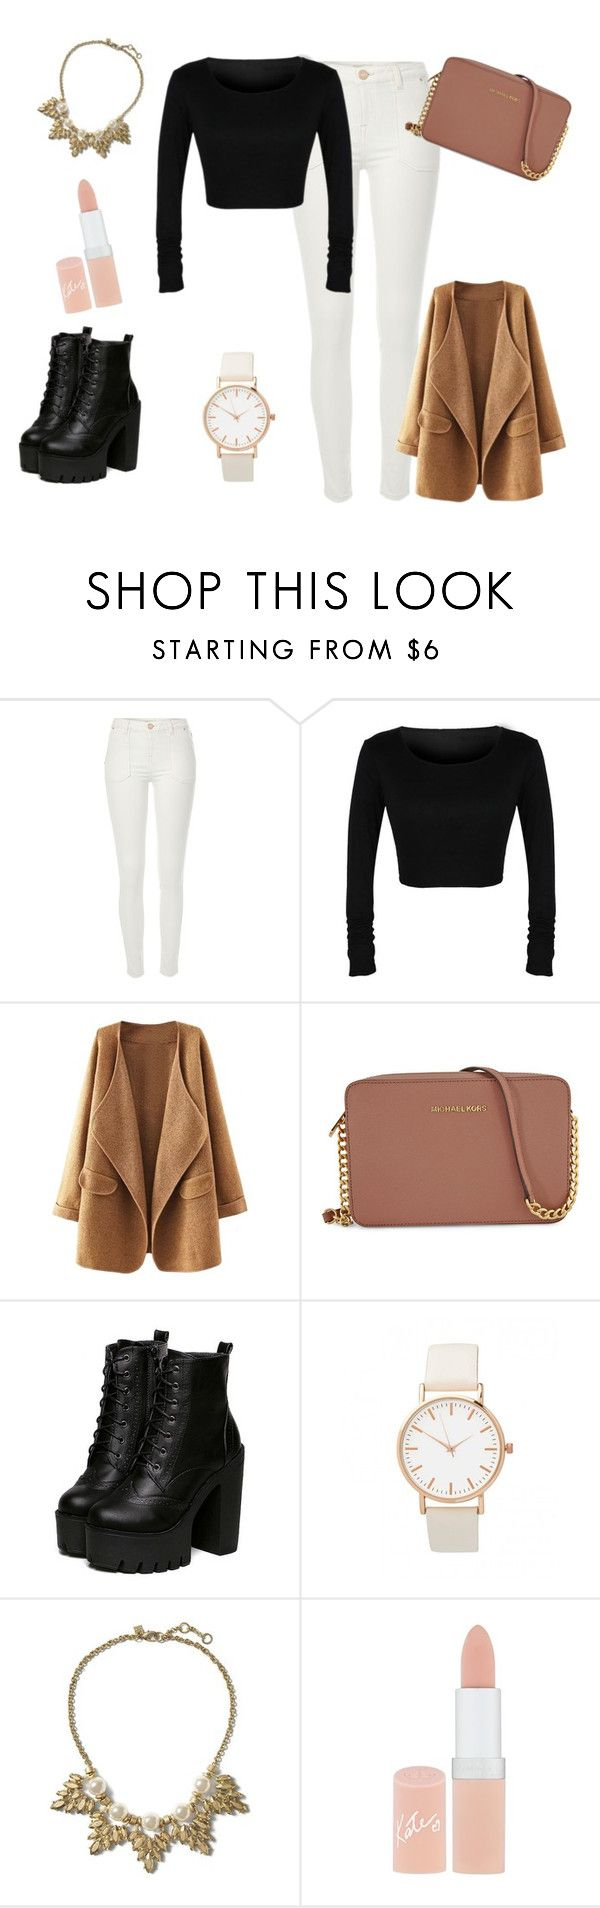 """Jesień :)))"" by dagusia112 on Polyvore featuring moda, River Island, Michael Kors, Banana Republic i Rimmel"